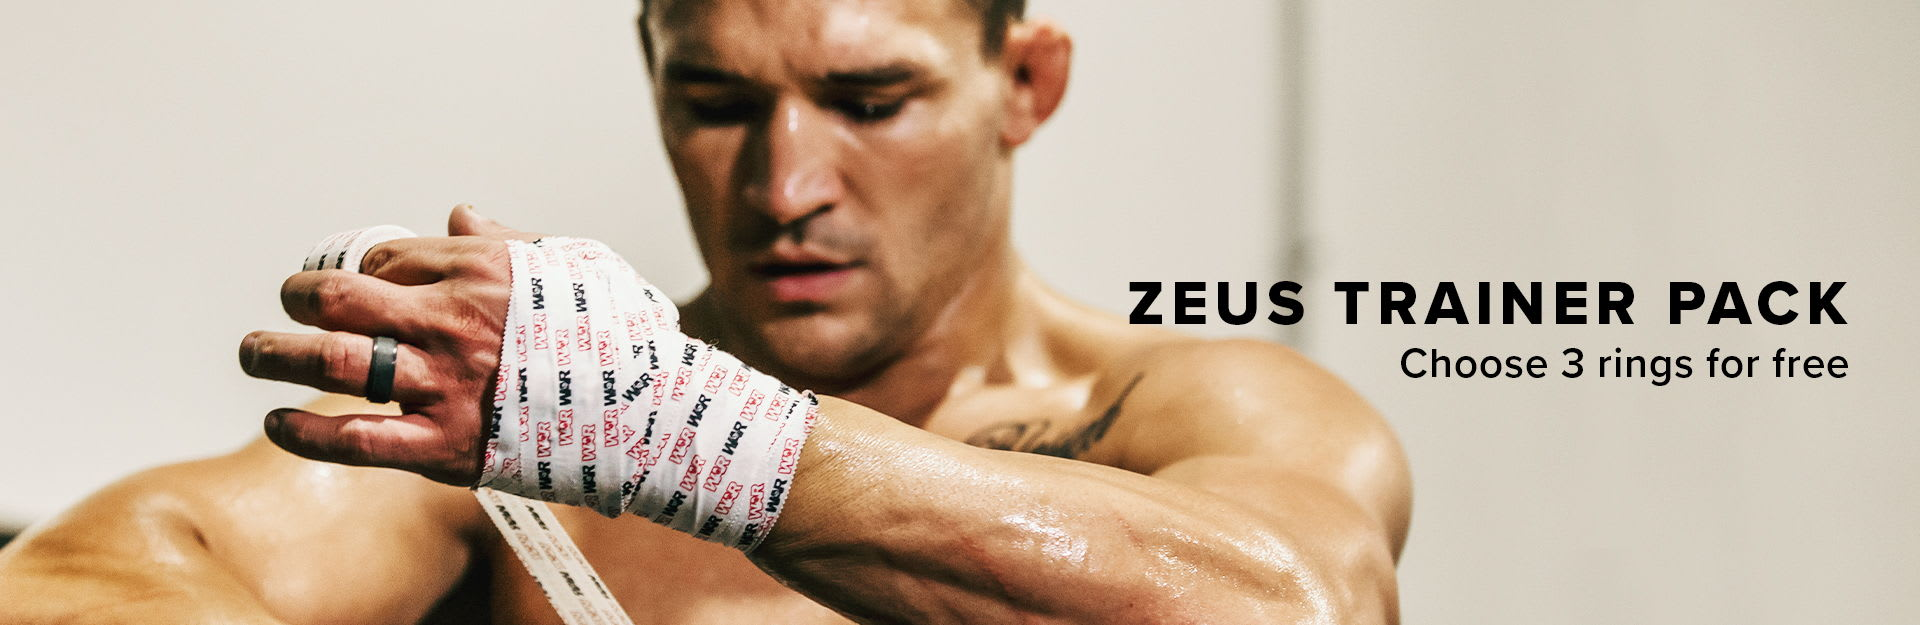 Zeus Trainer Pack, Michael Chandler wrapping his hands in preparation for a match